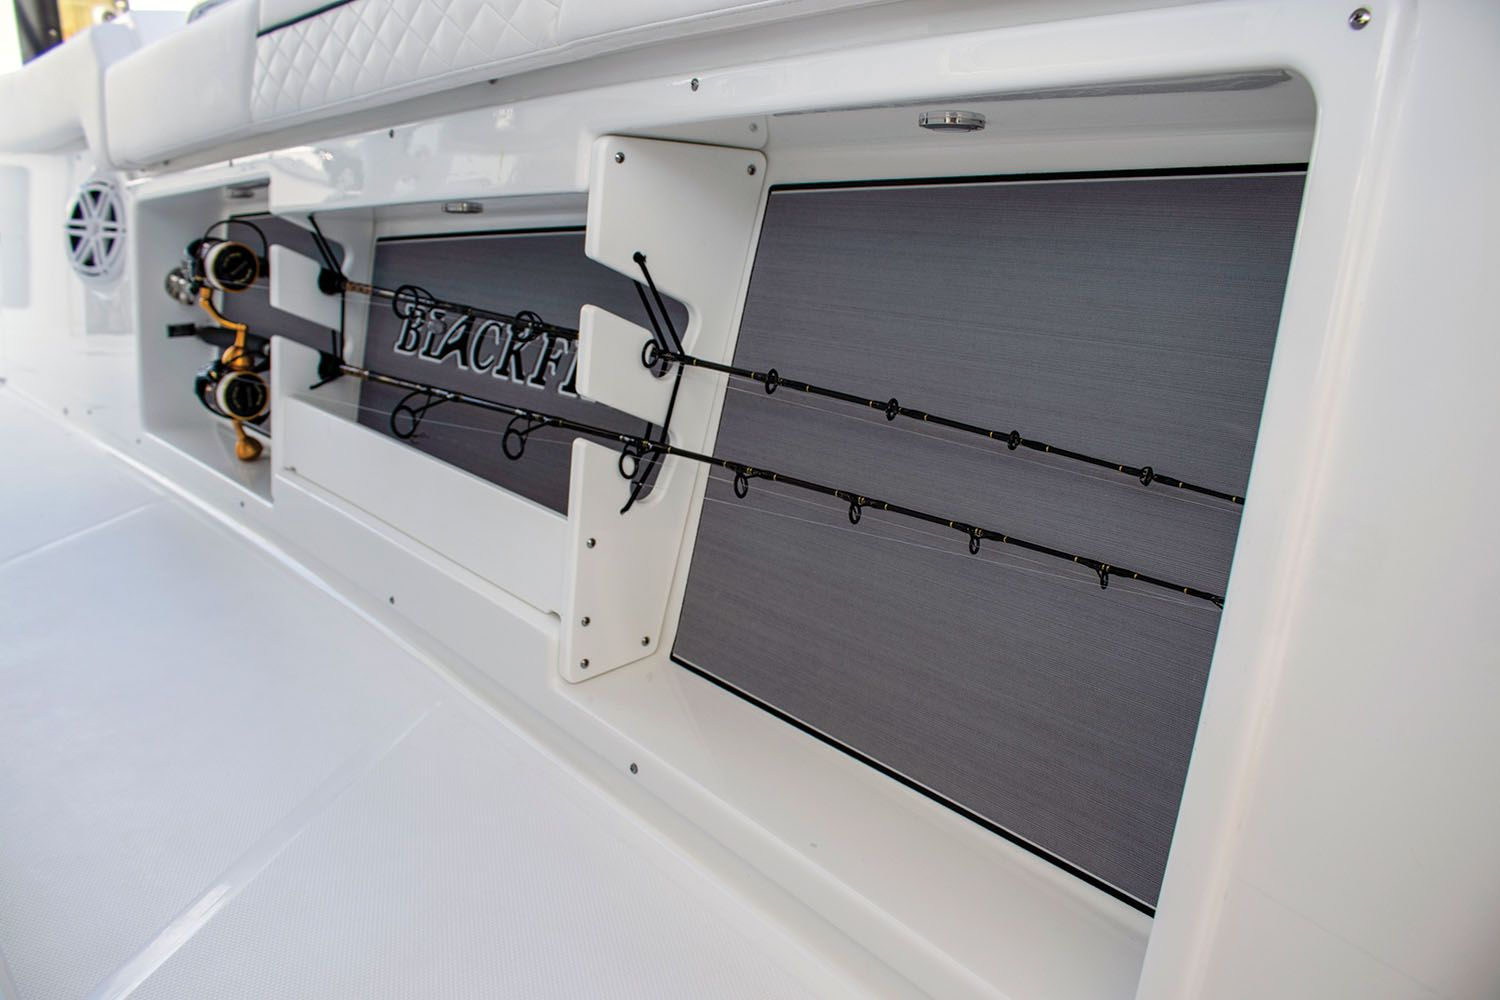 Gunwale racks keep additional rods ready yet out of the way.